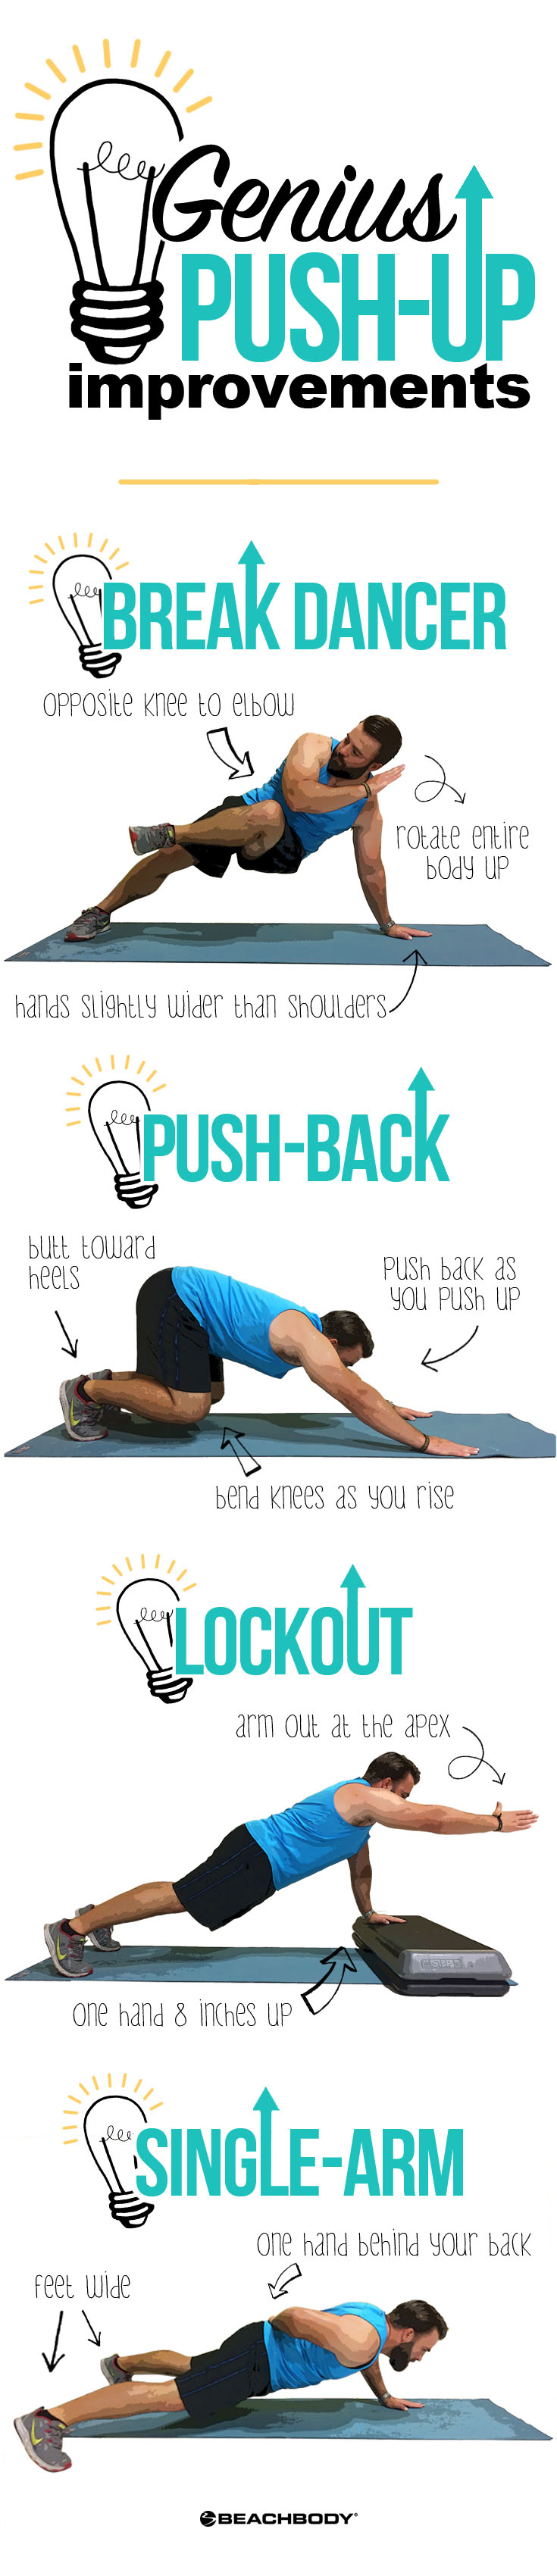 The best core workouts start with push-ups. Check out these genius push-up improvements for the best core strengthening exercises.